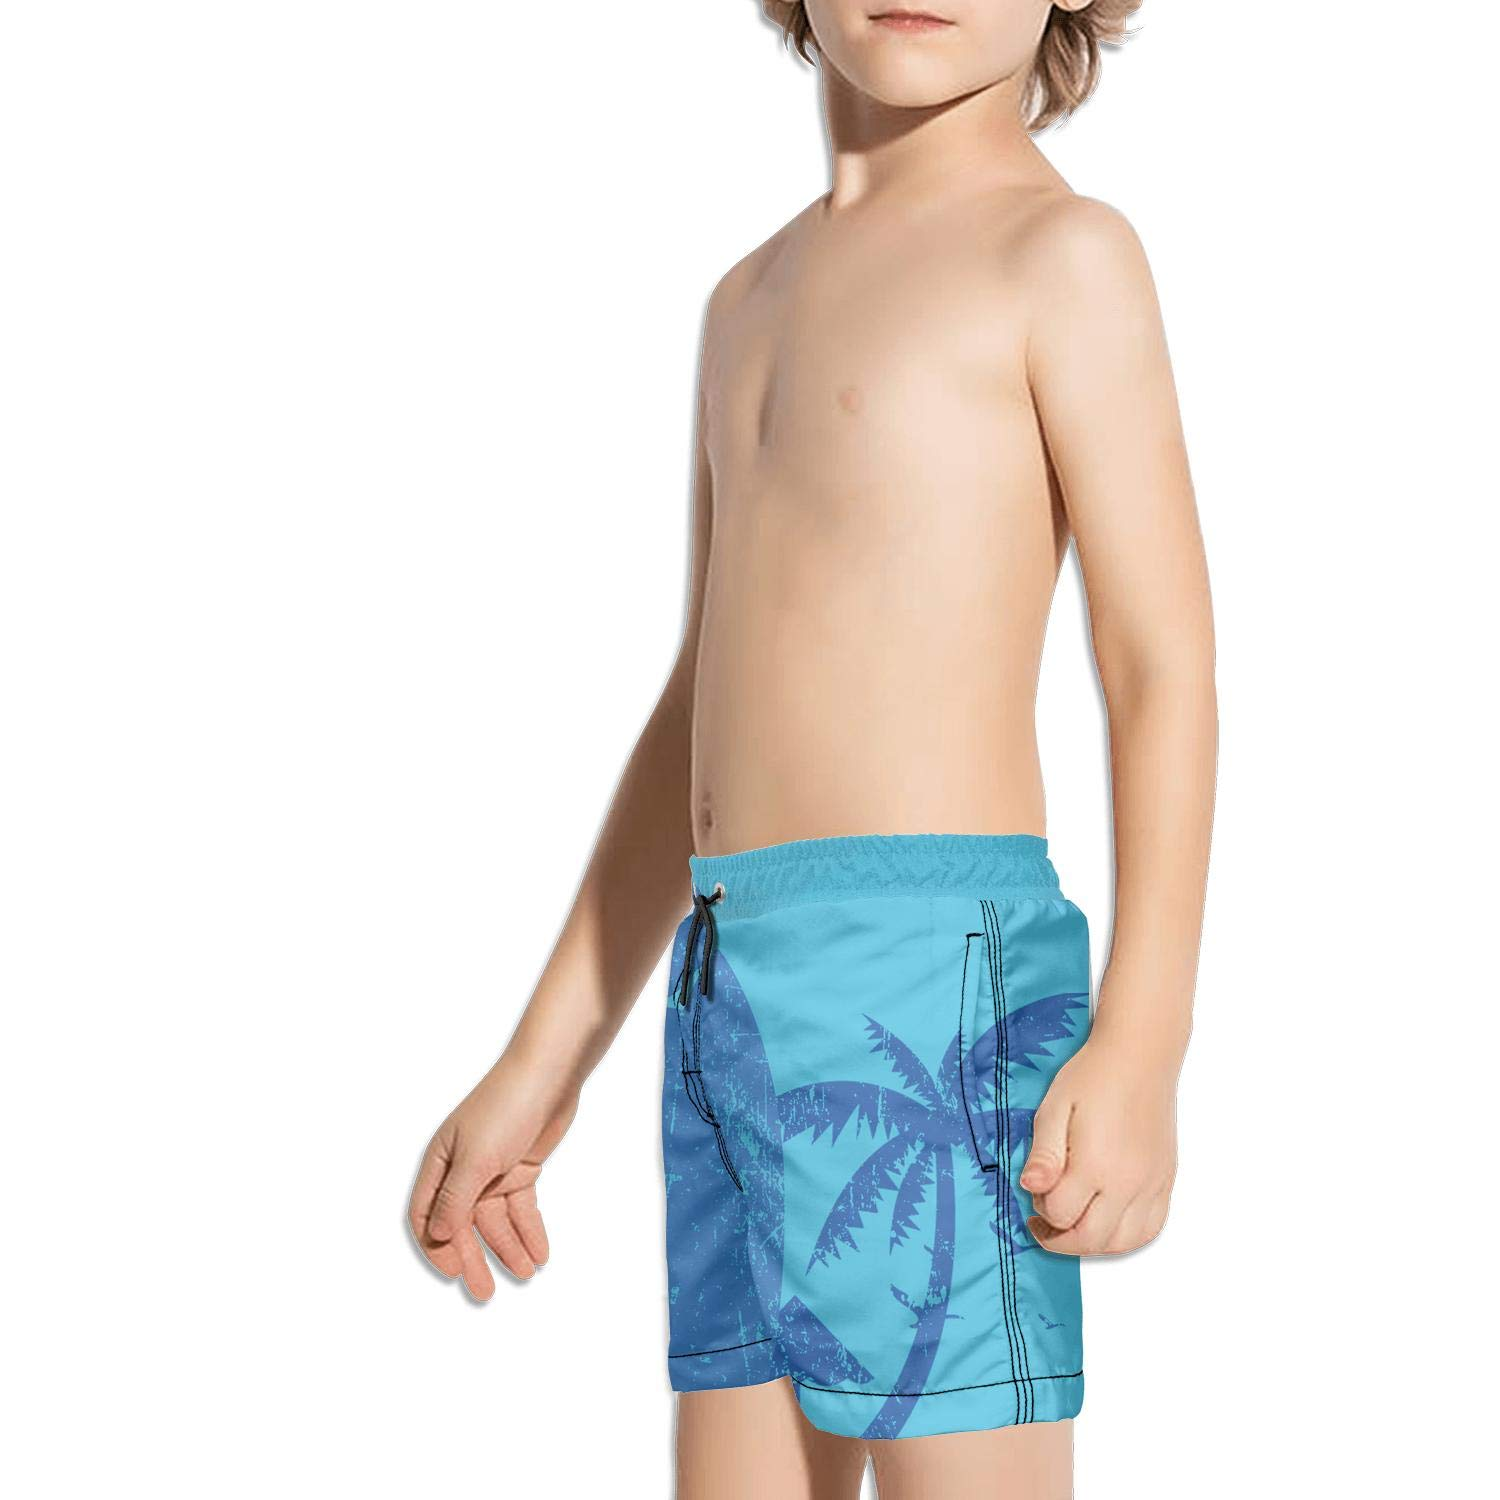 Boys Quick Dry Swim Trunks Sweet Sugar Glider Flowers Pattern Beach Board Shorts